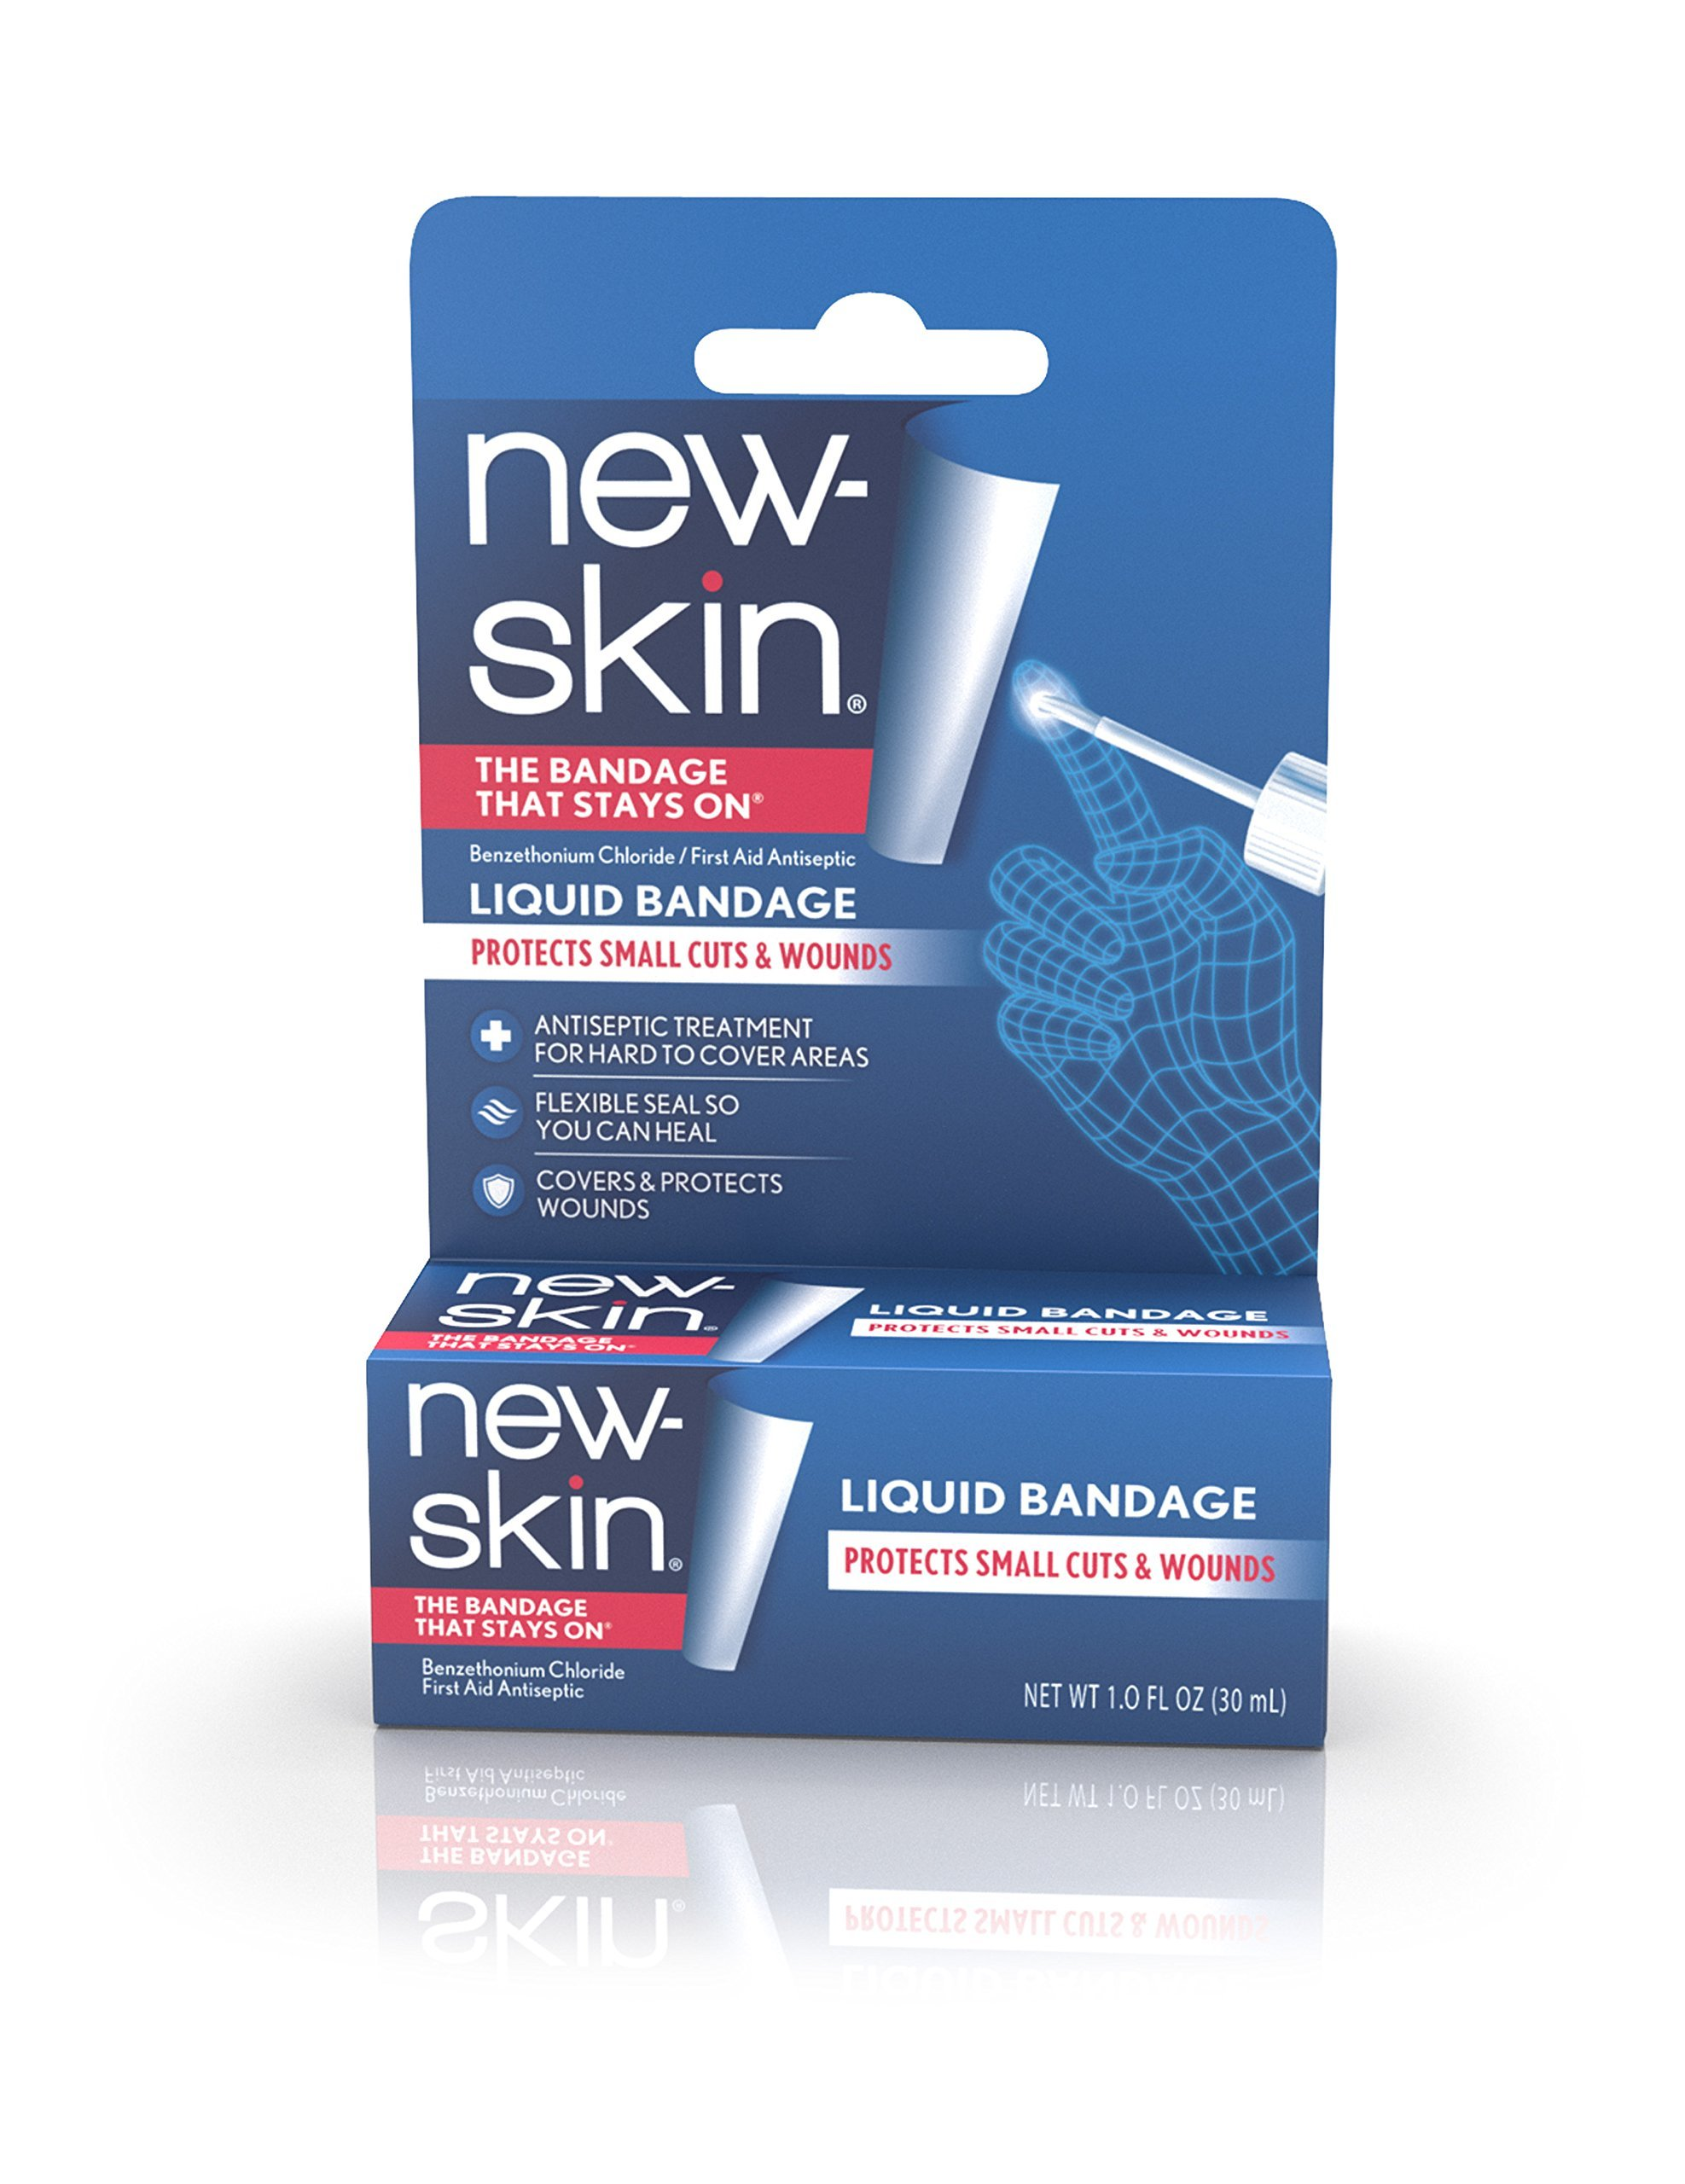 New-Skin Liquid Bandage 1.0 FL OZ (Pack of 4), Liquid Bandage for Hard-to-Cover Cuts, Scrapes, Wounds, Calluses, and Dry, Cracked Skin